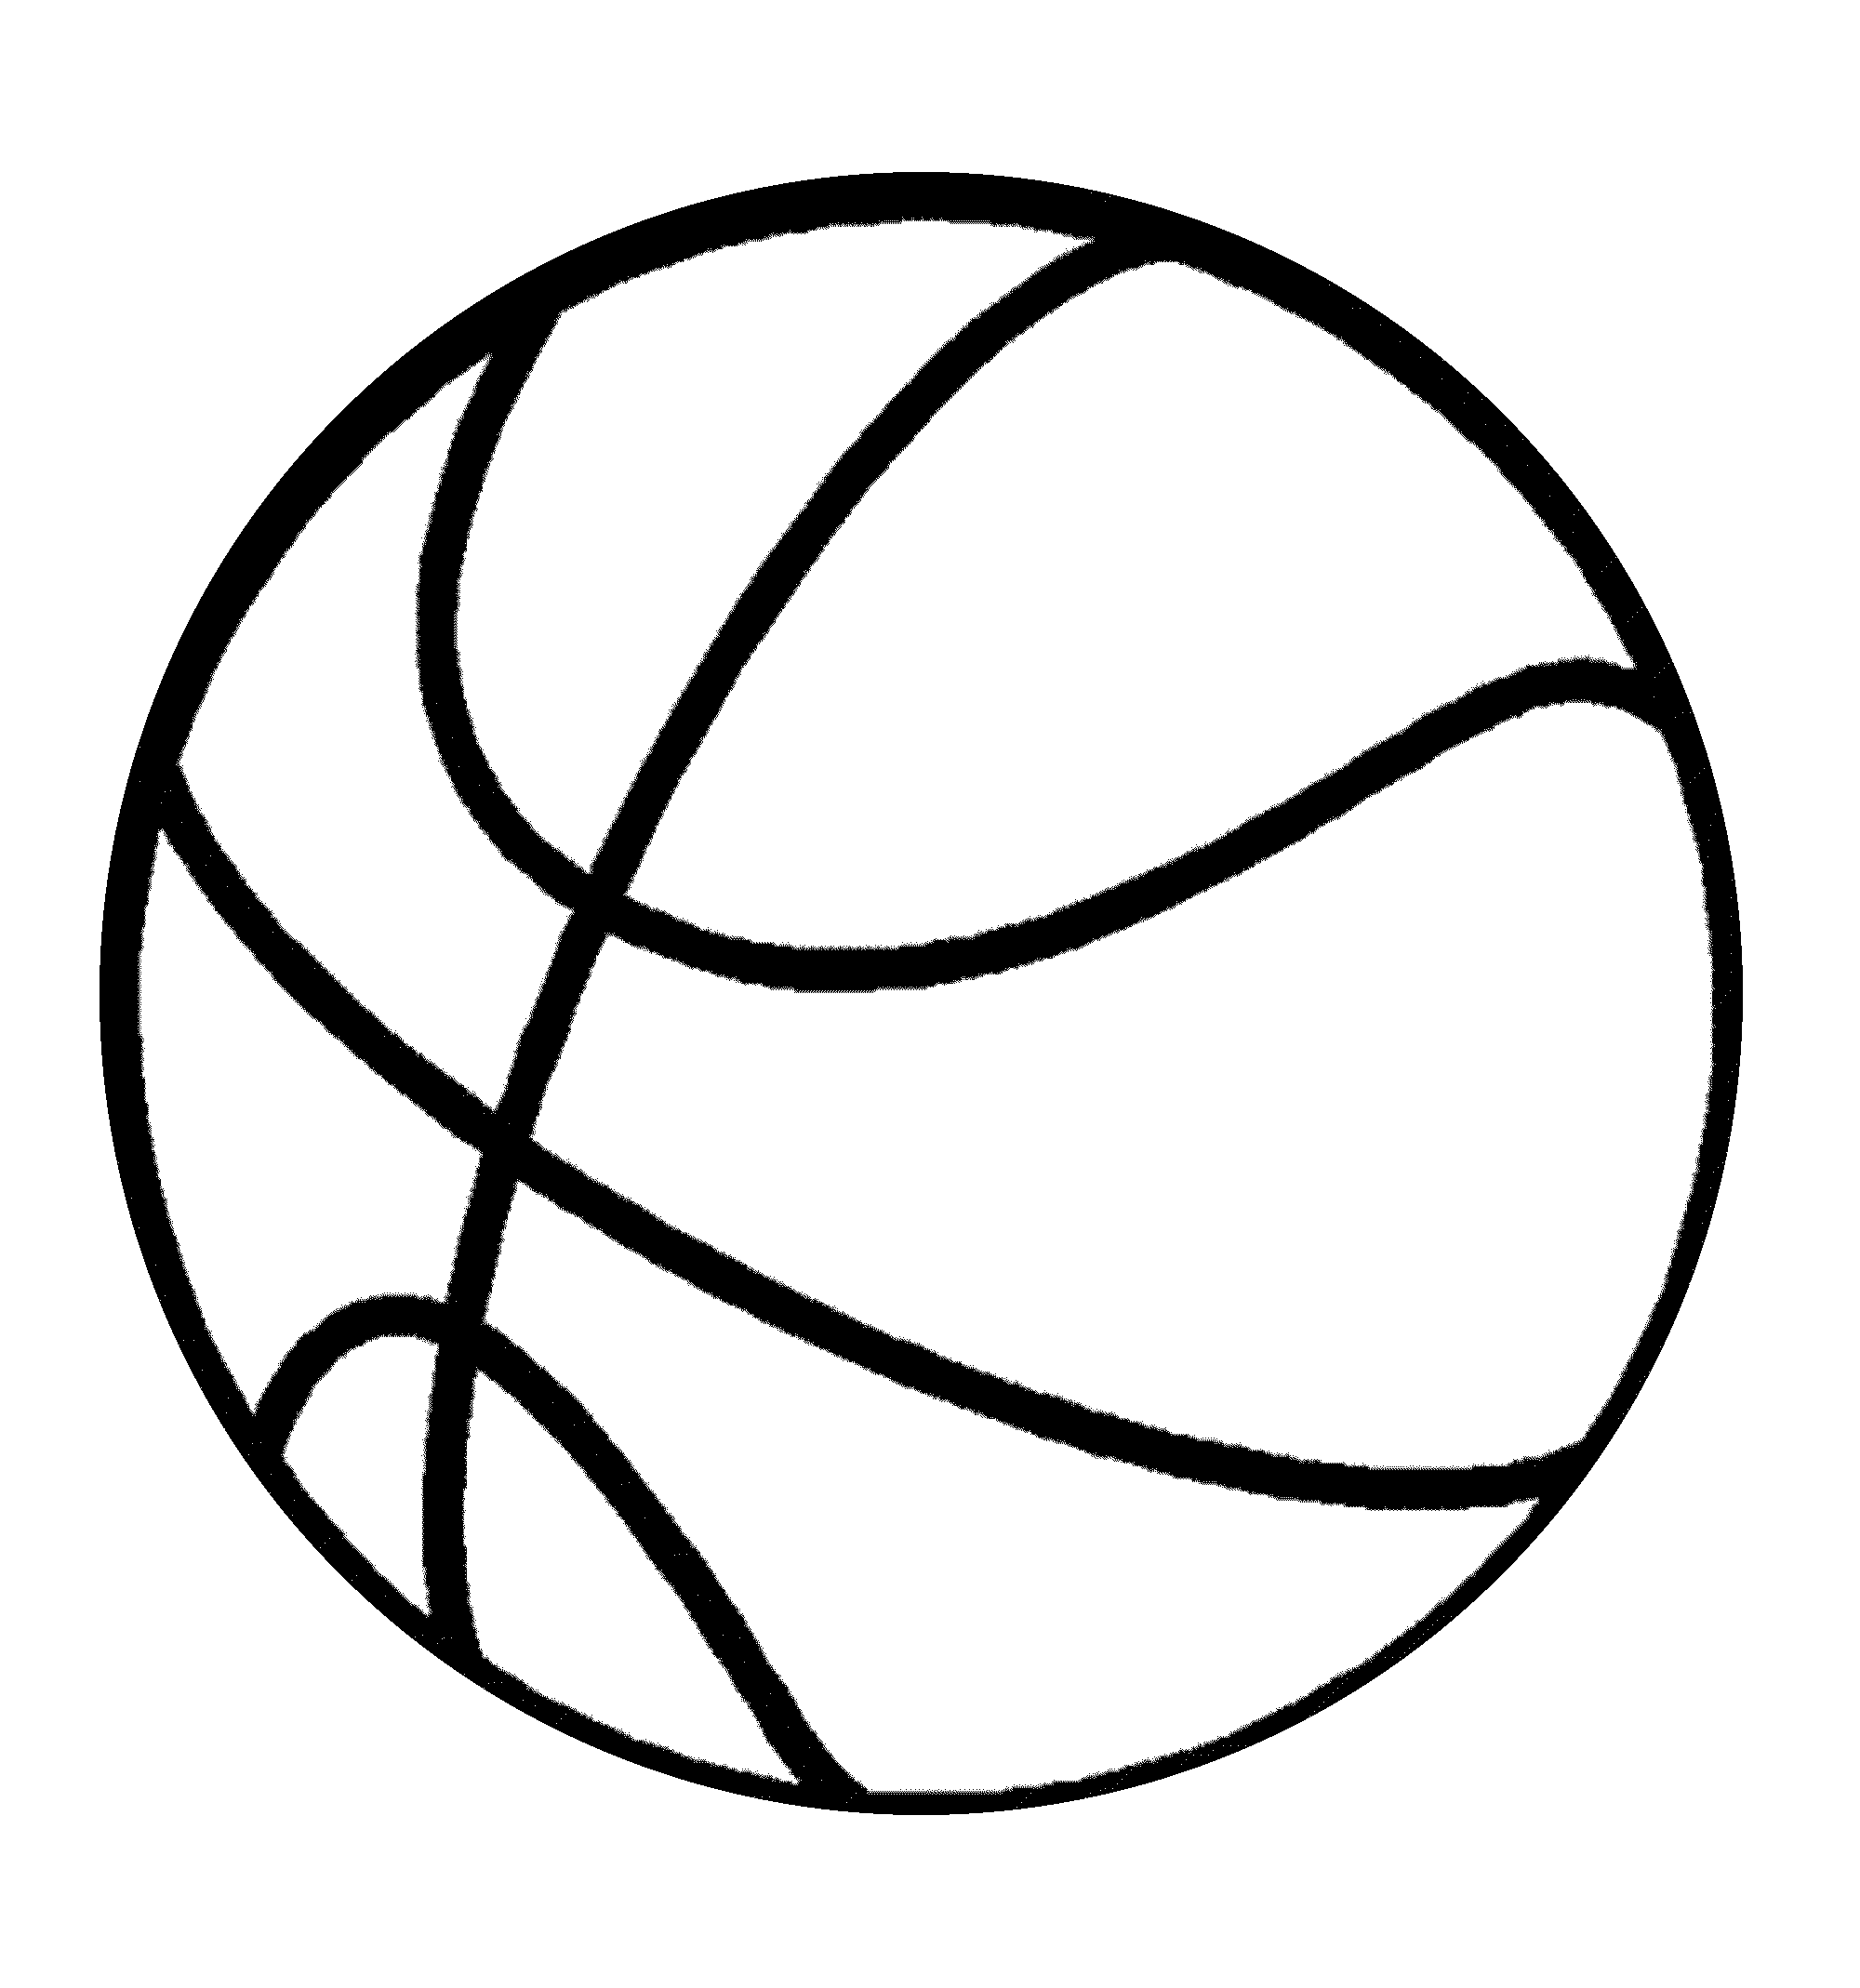 ball coloring pages ball coloring pages for kids to print for free coloring pages ball